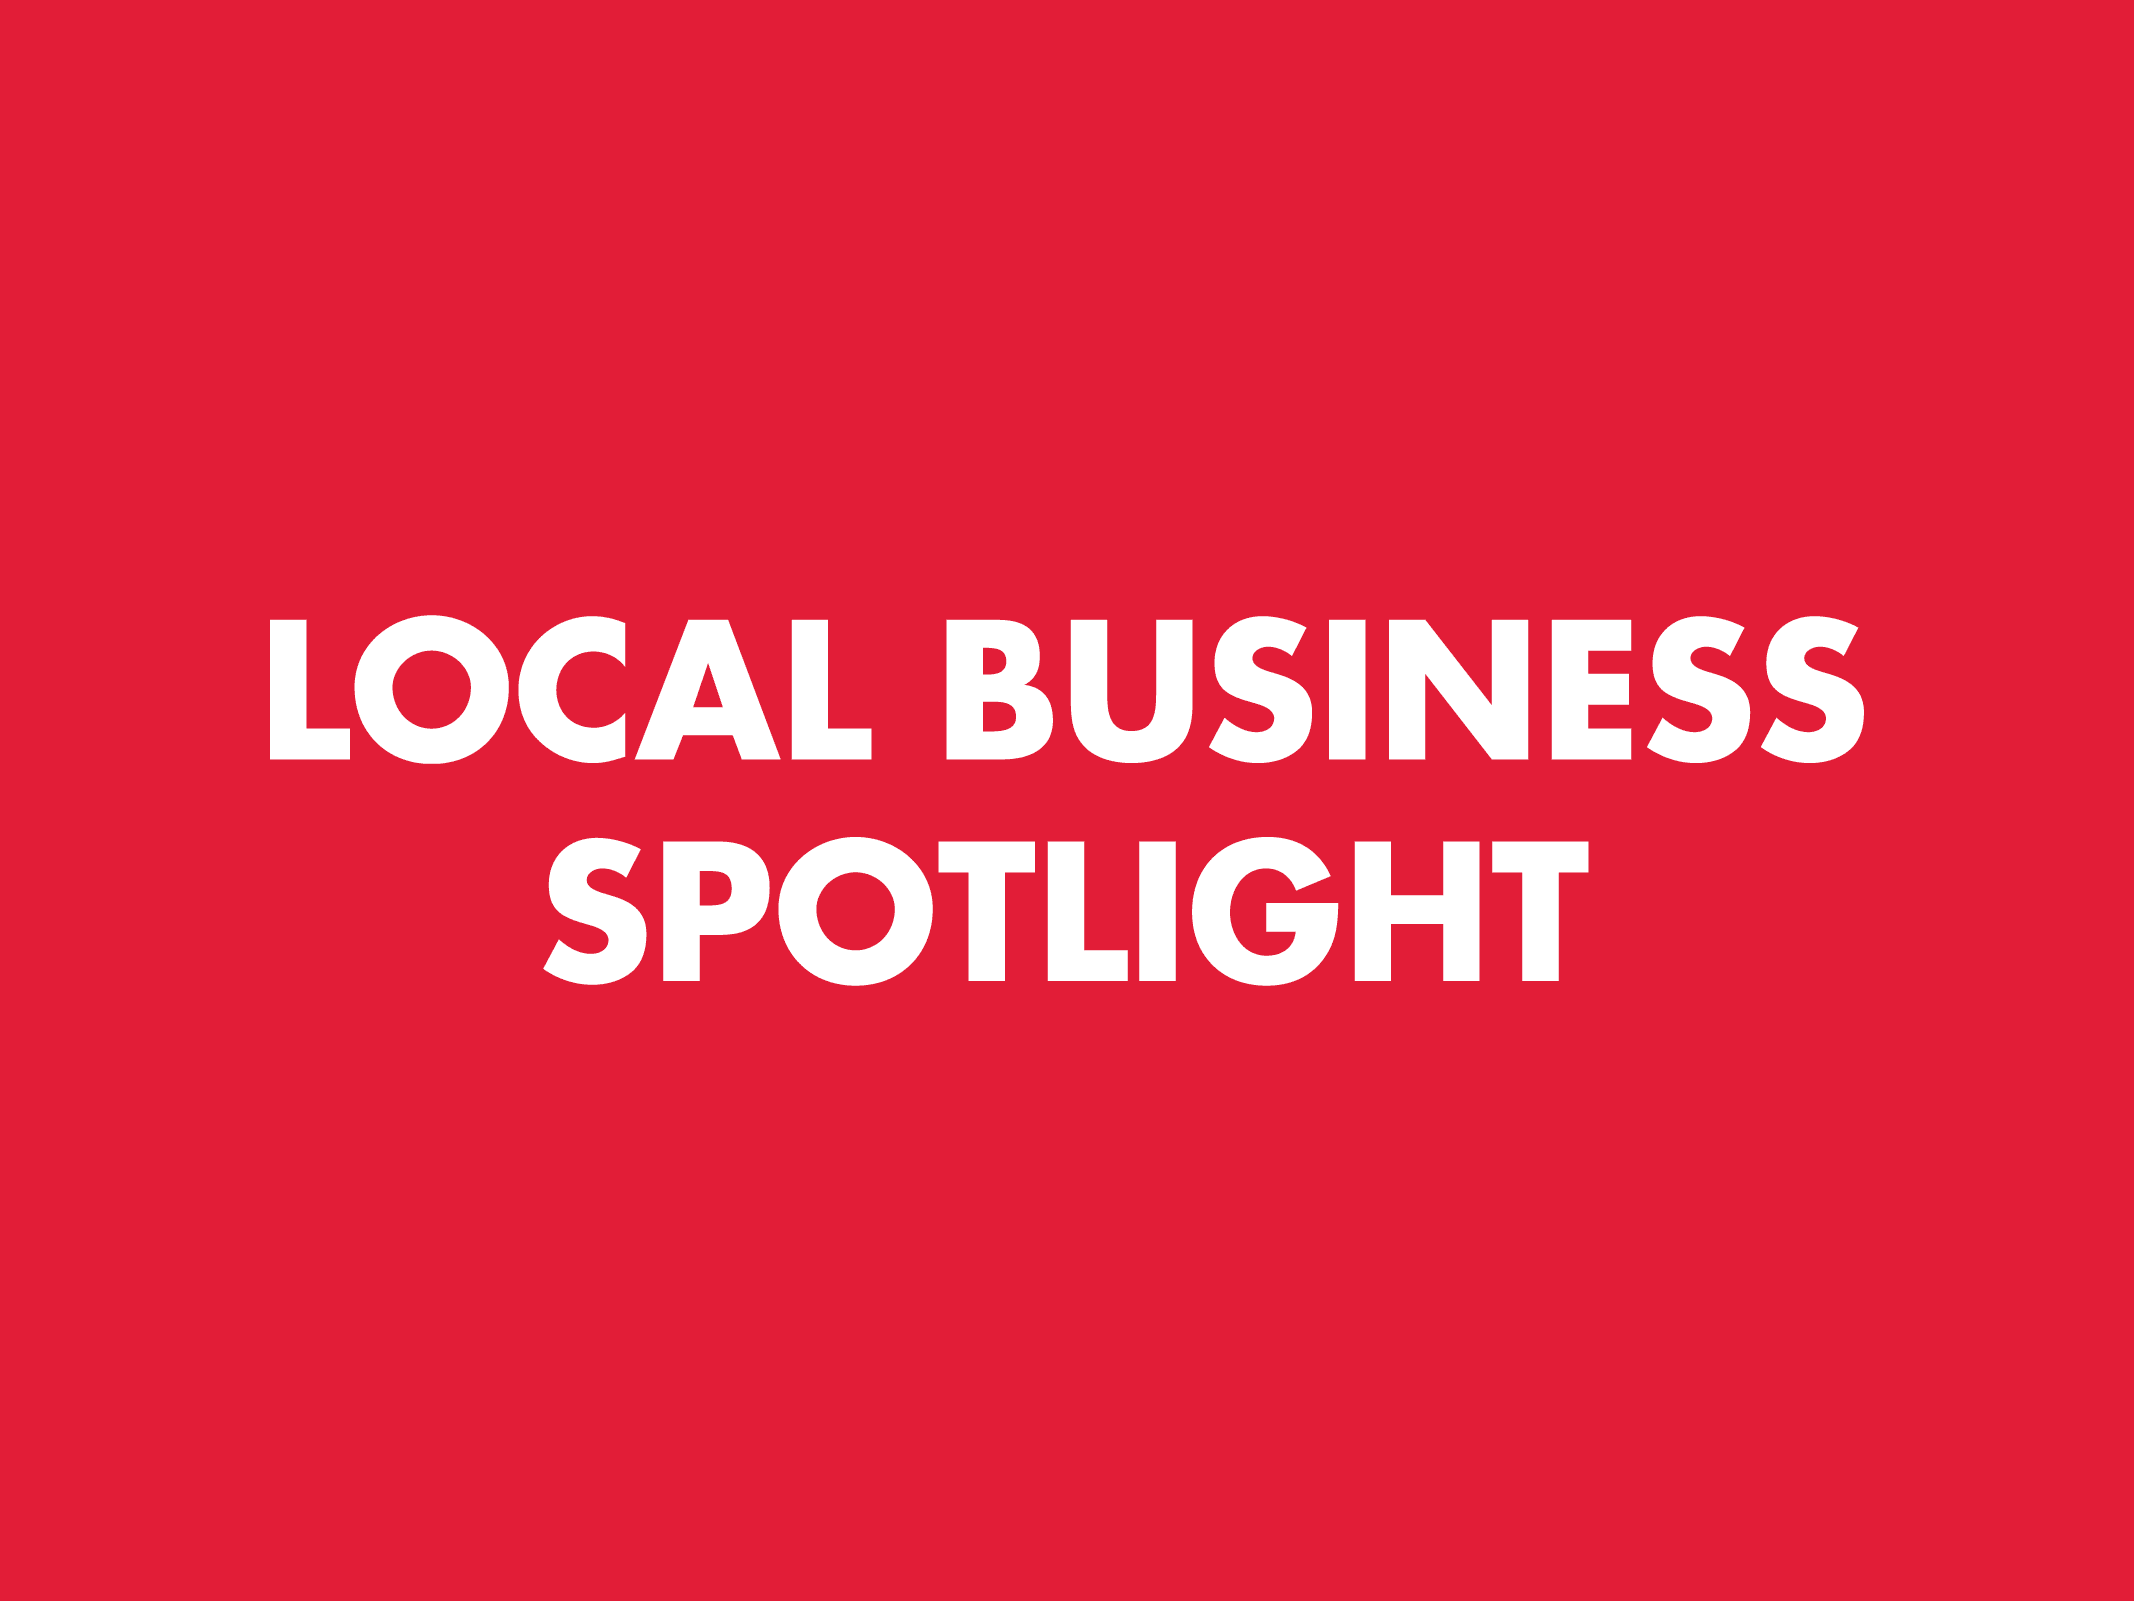 Local Business Spotlight: Bringing hope to the nation